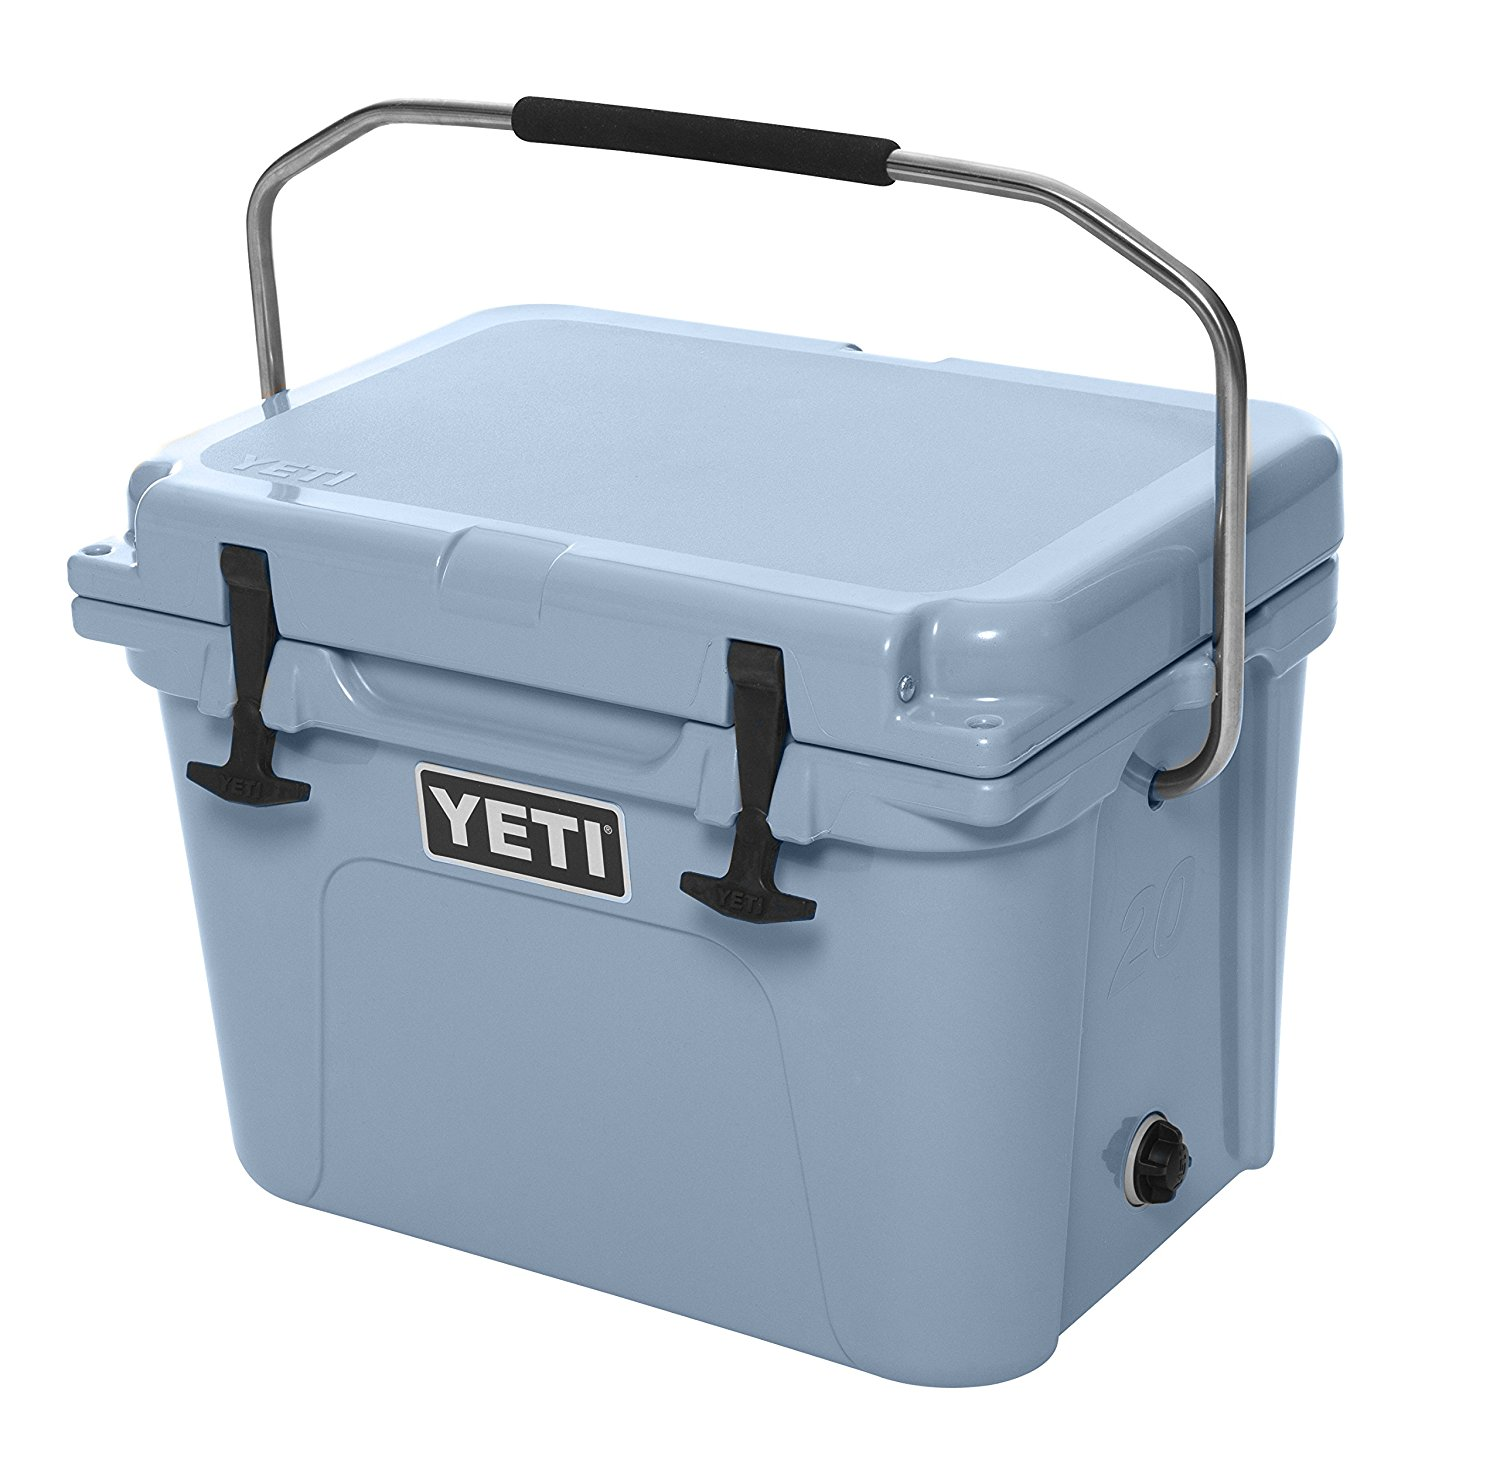 20 Quart Orca vs Yeti Roadie